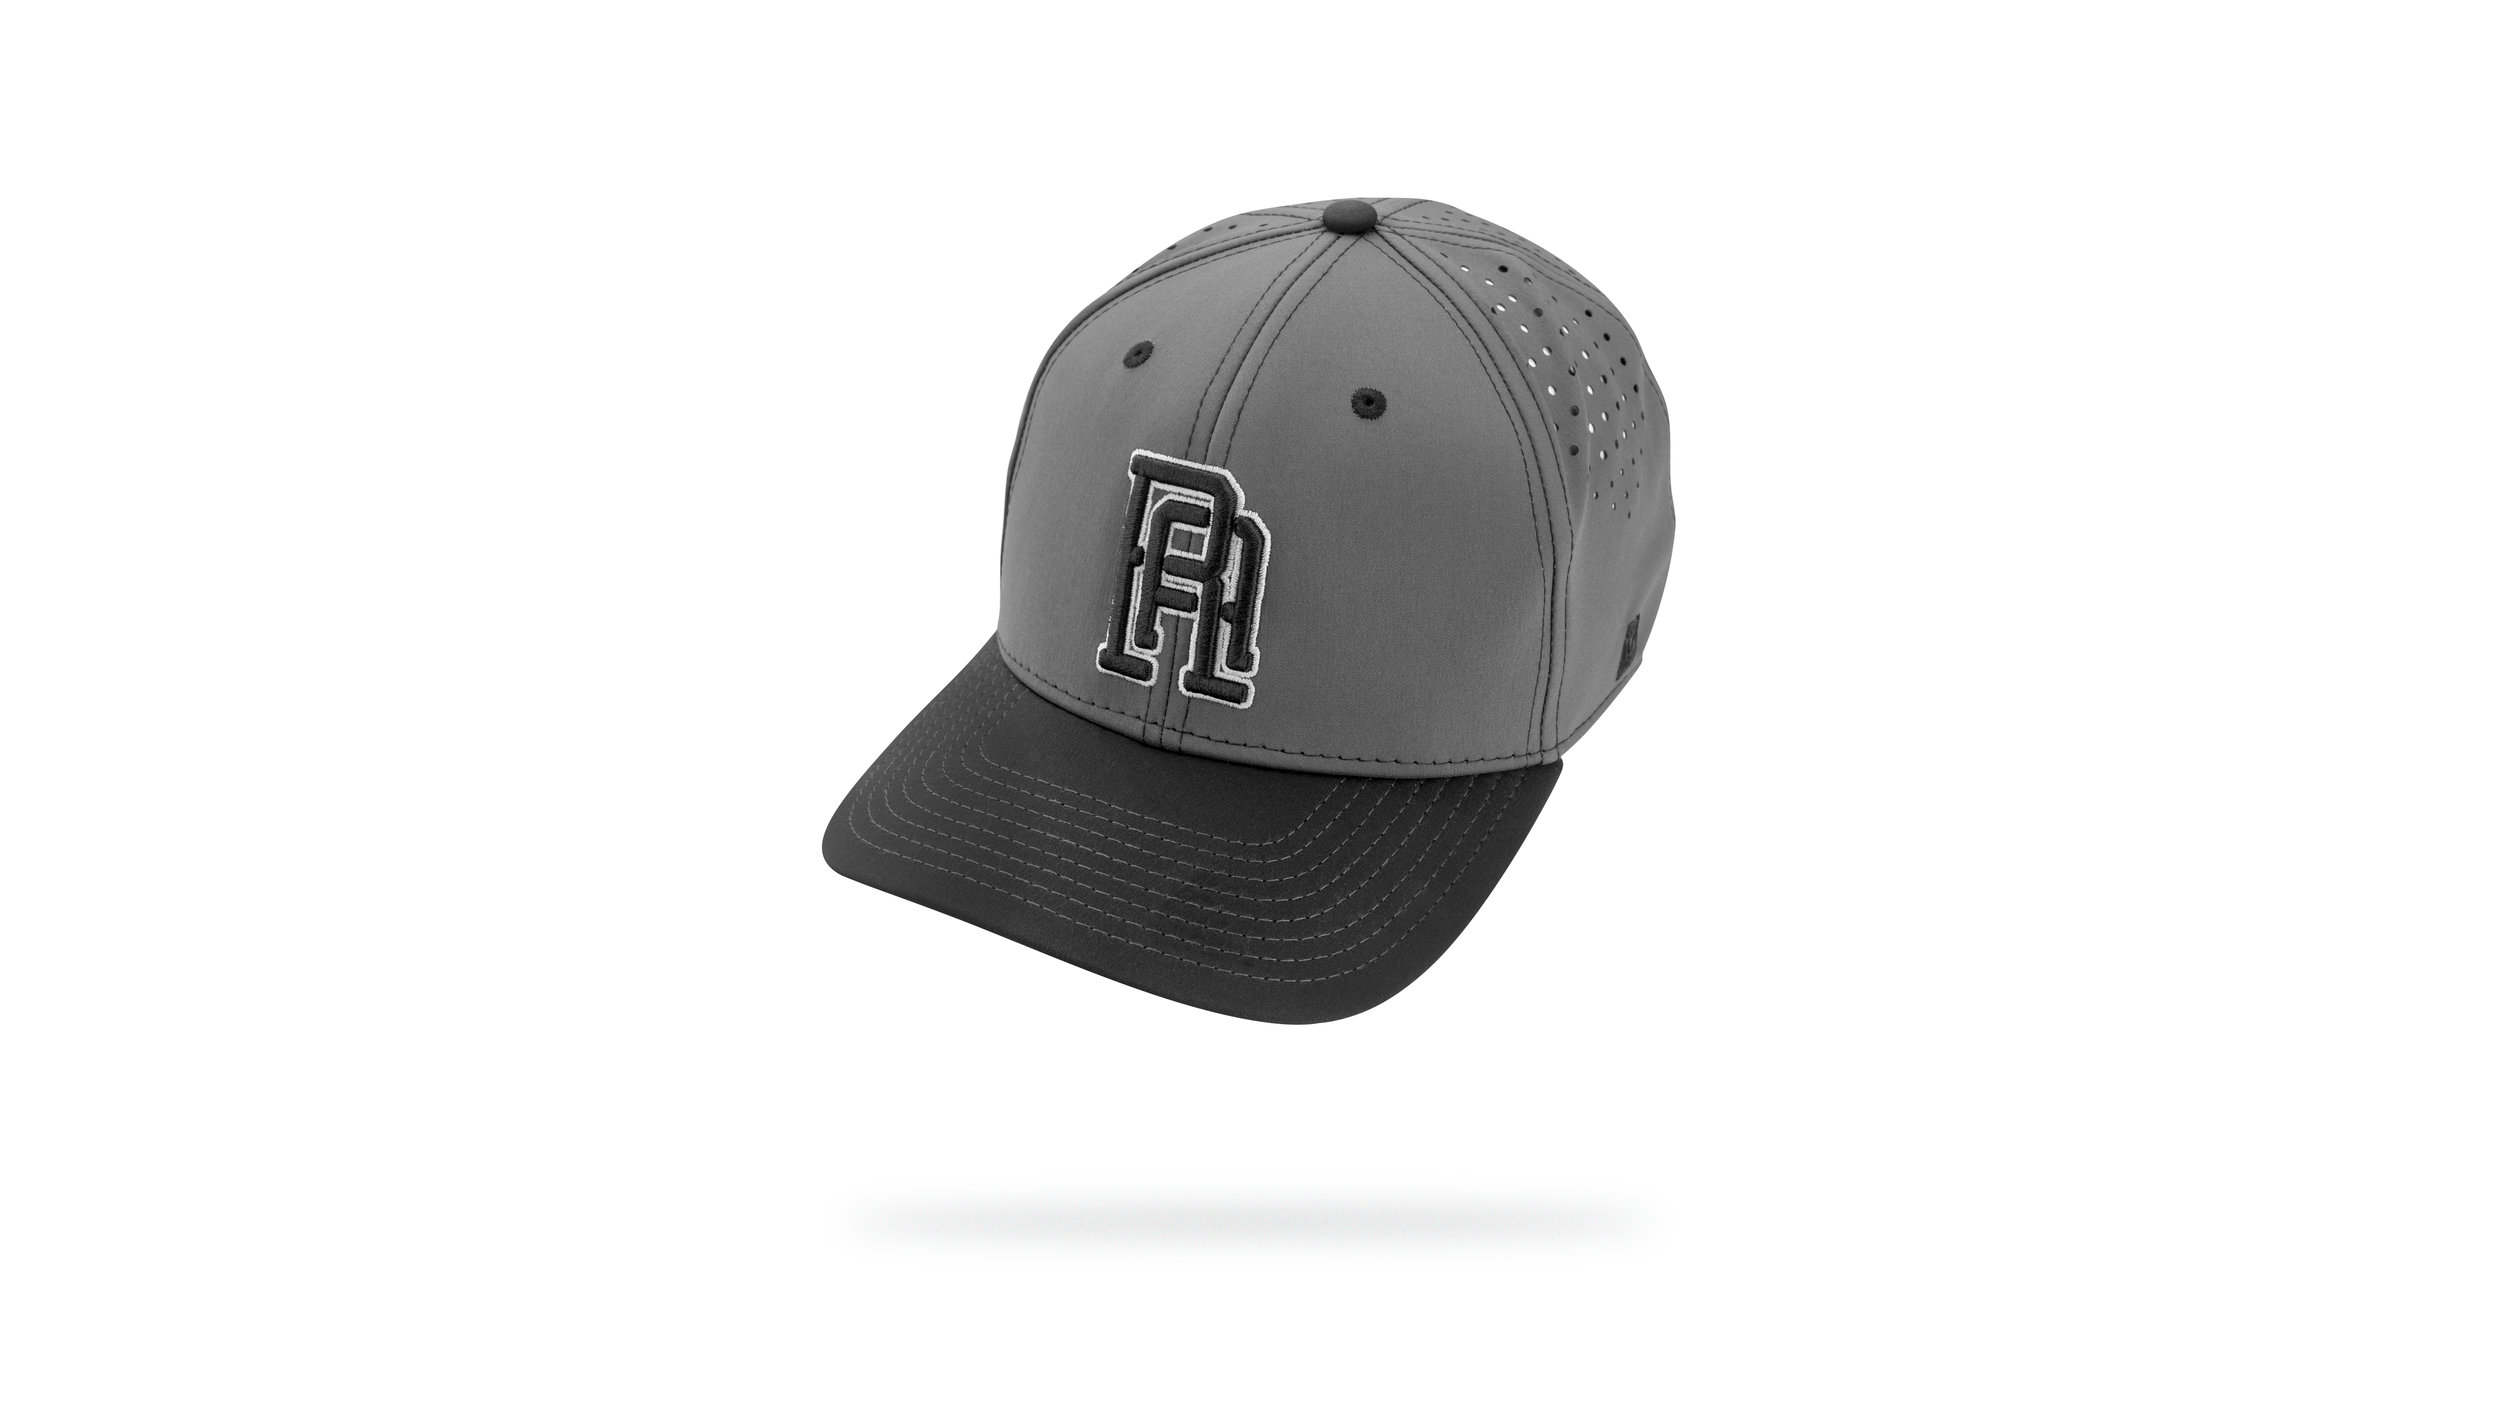 Featured Hat:  STYLE XXX - P3 Perforated Performance Cap w/Snapback closure & 3D Logo Embroidery